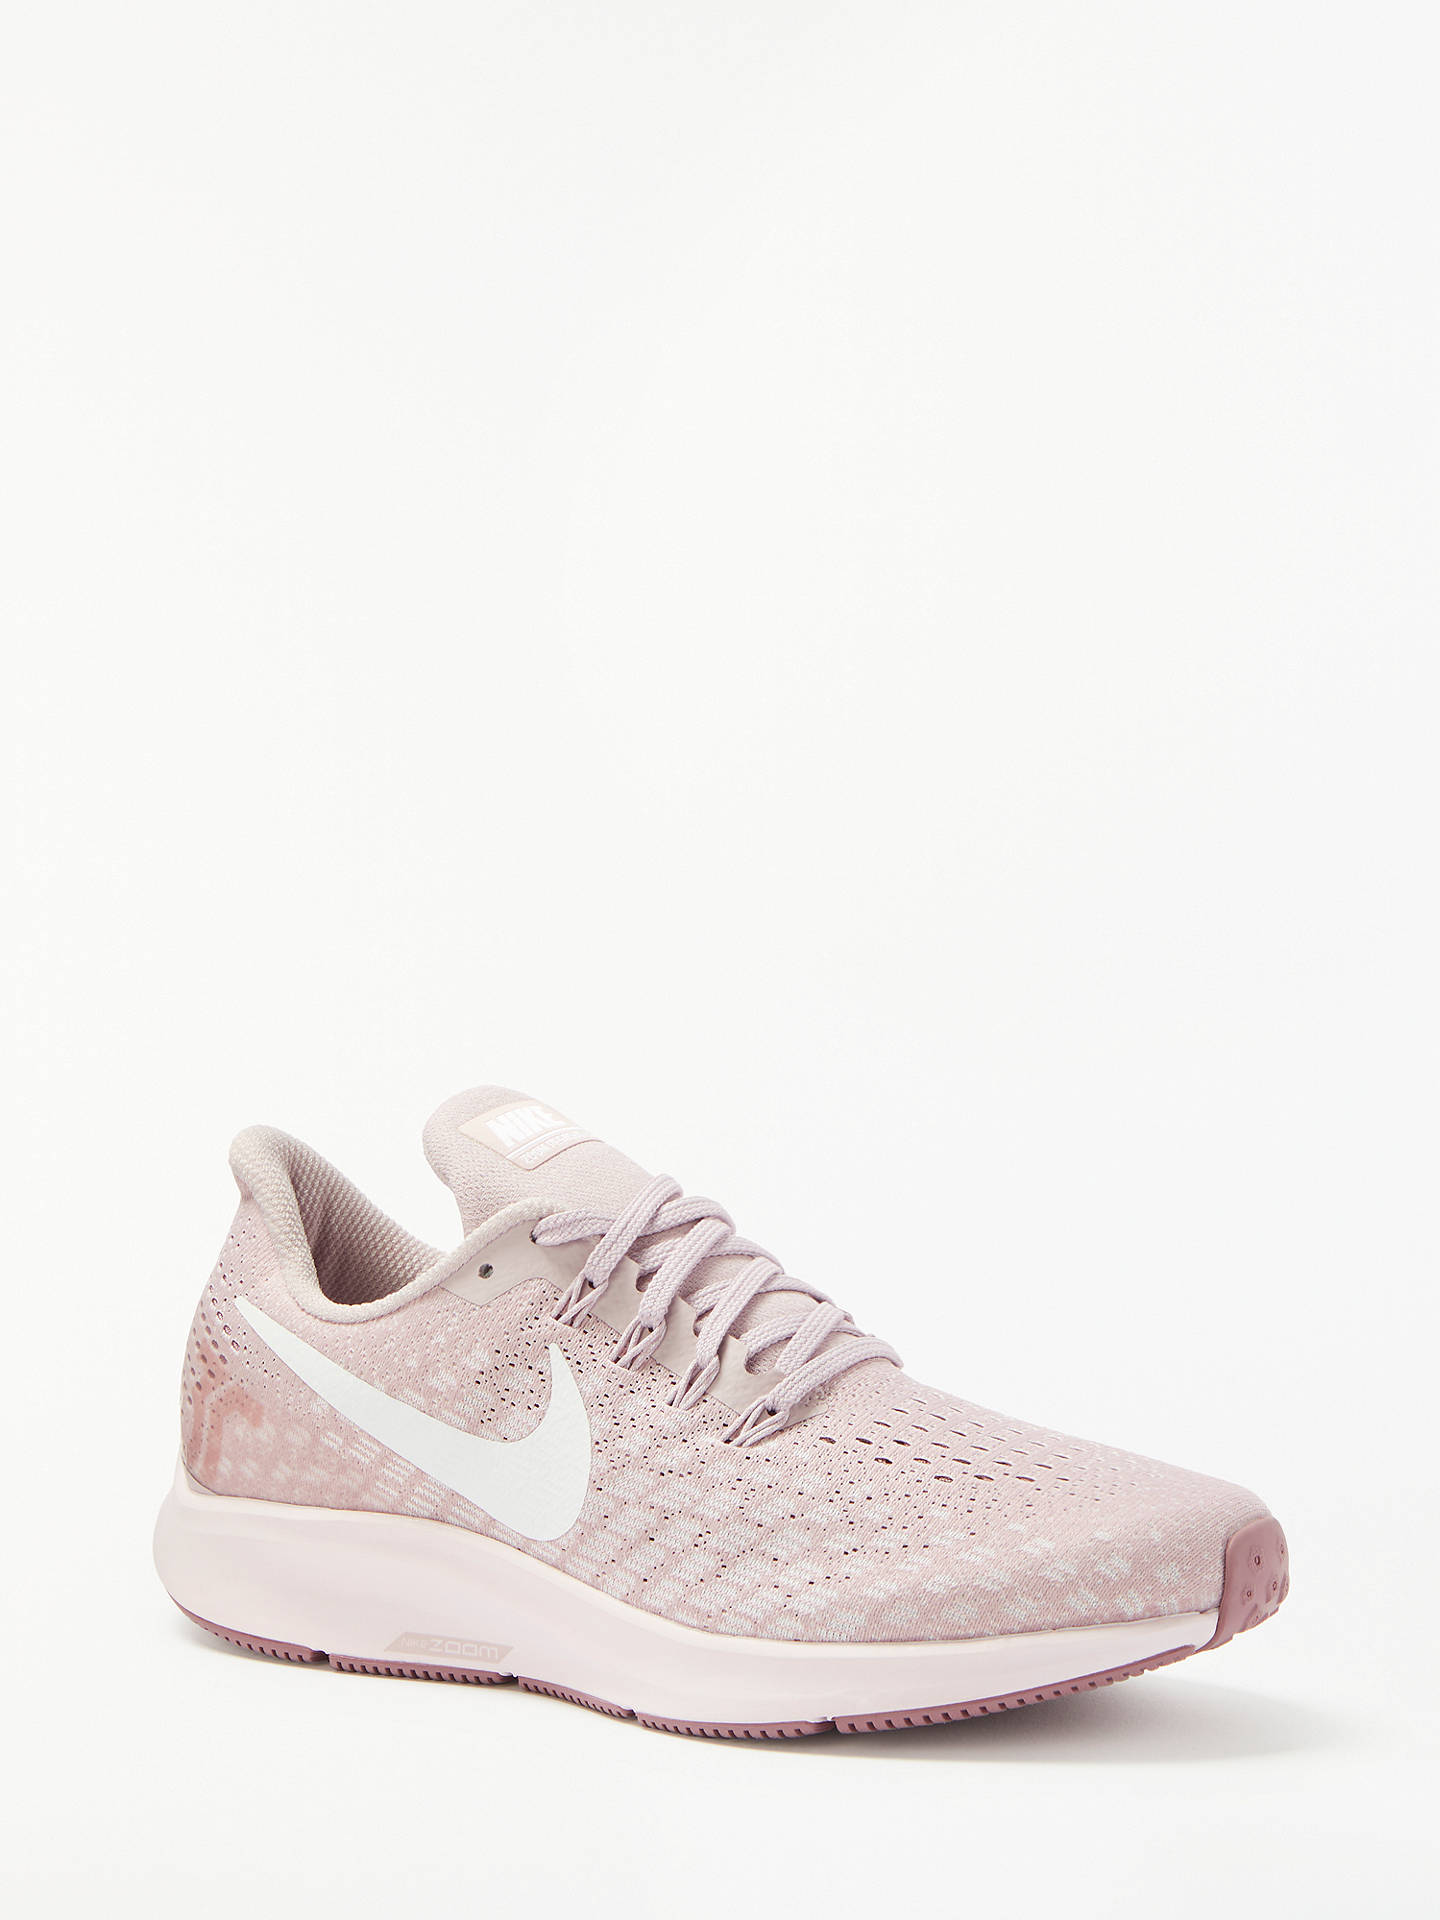 free shipping 10ca6 afcd6 ... Buy Nike Air Zoom Pegasus 35 Women s Running Shoes, Particle Rose White,  4 ...